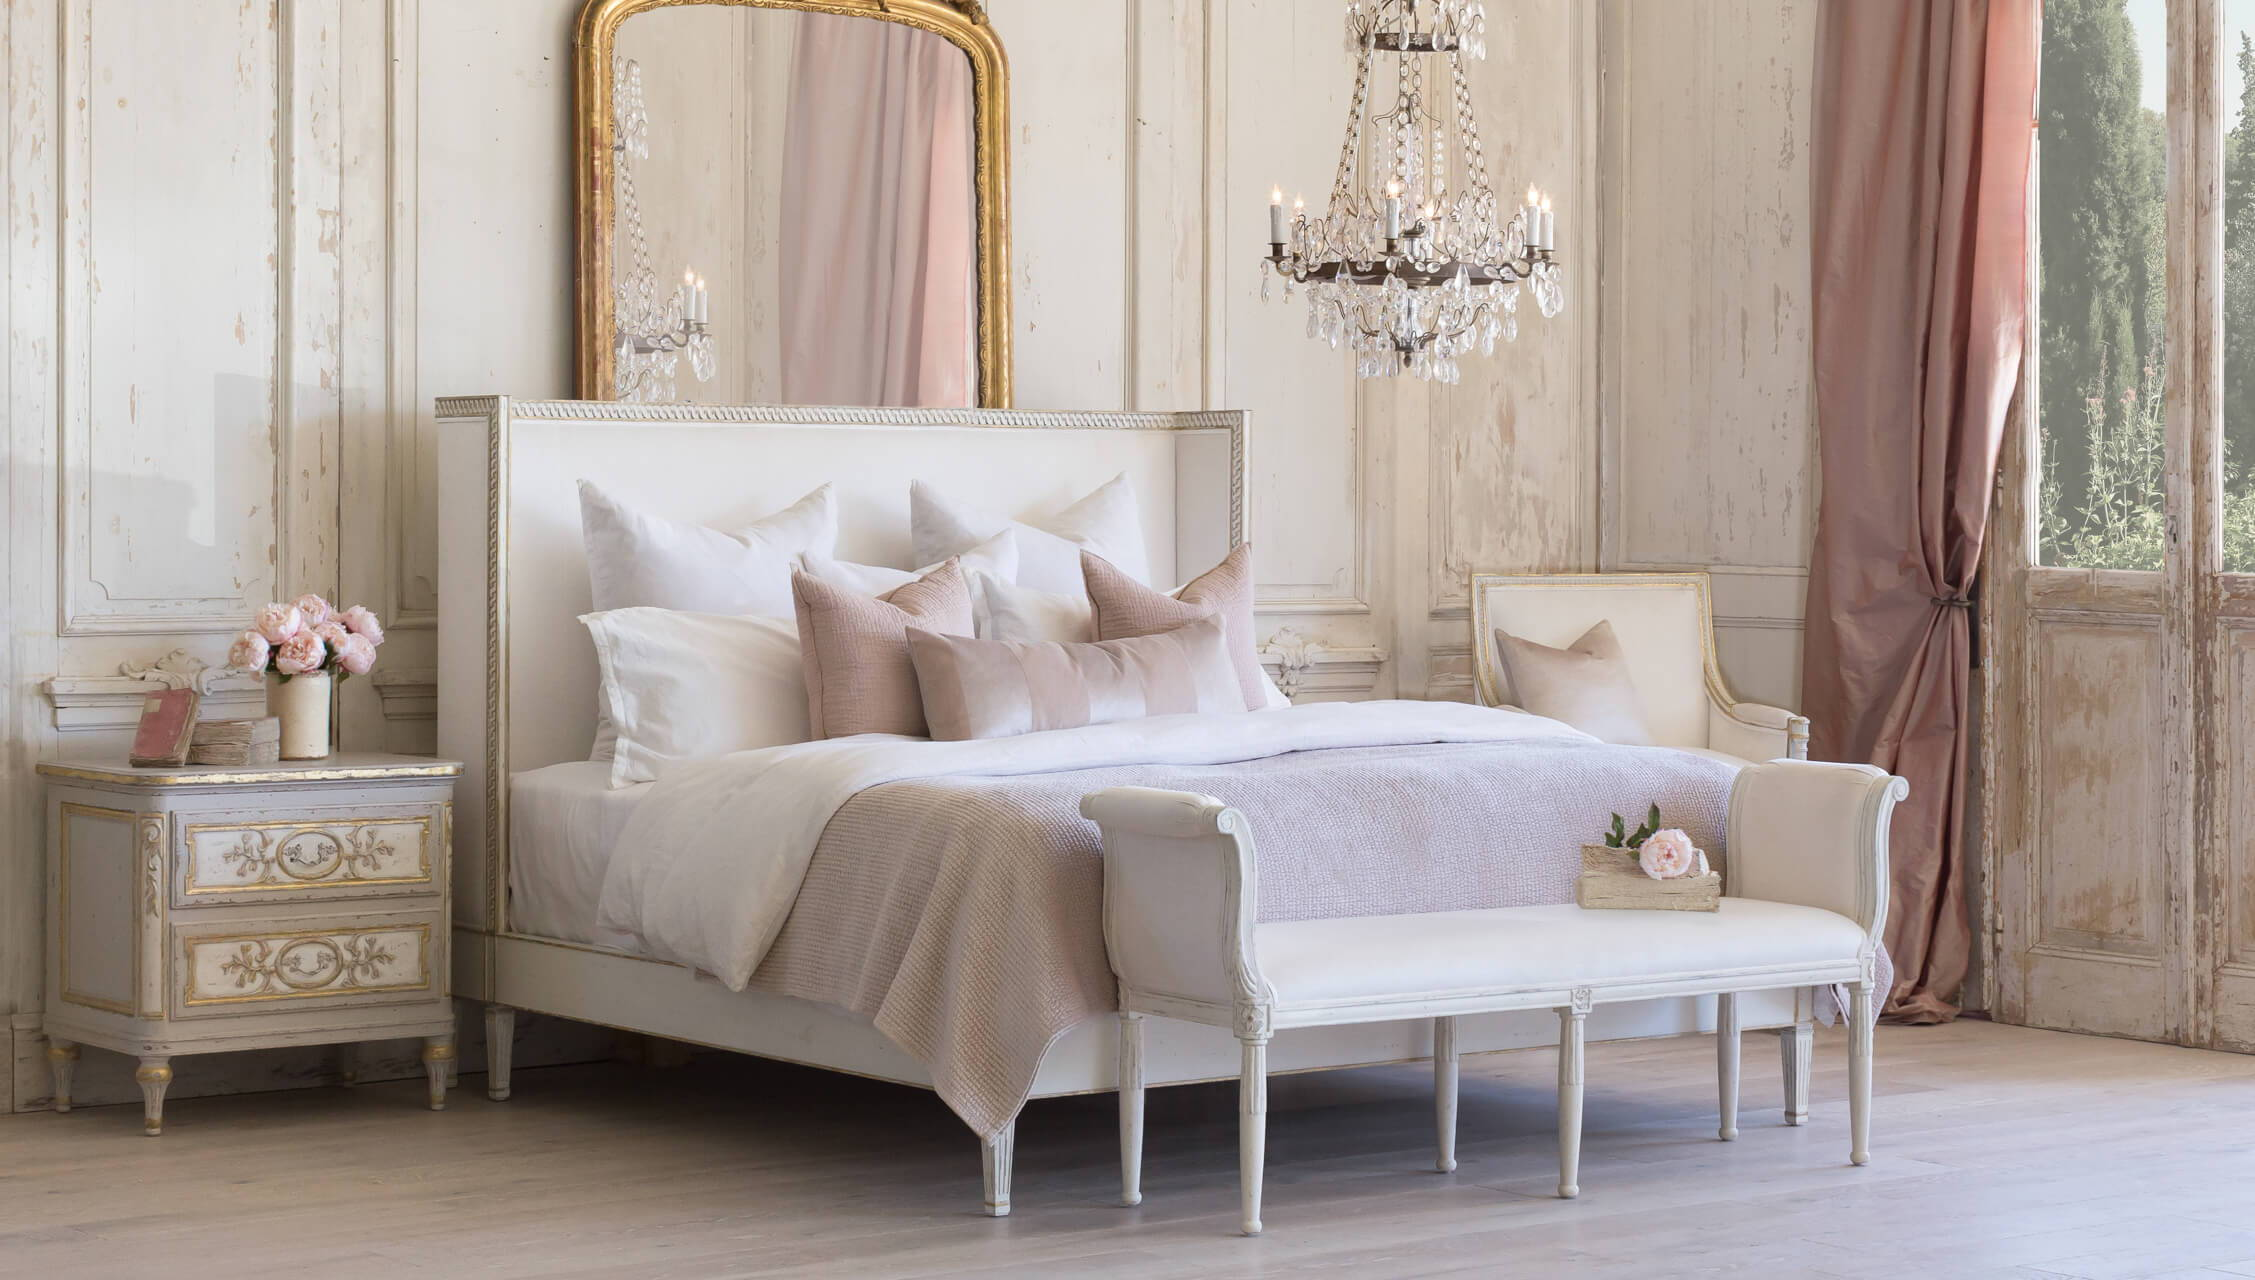 Eloquence® Cassia Bed in Ivory Velvet and Antique White With Gold Leaf Finish